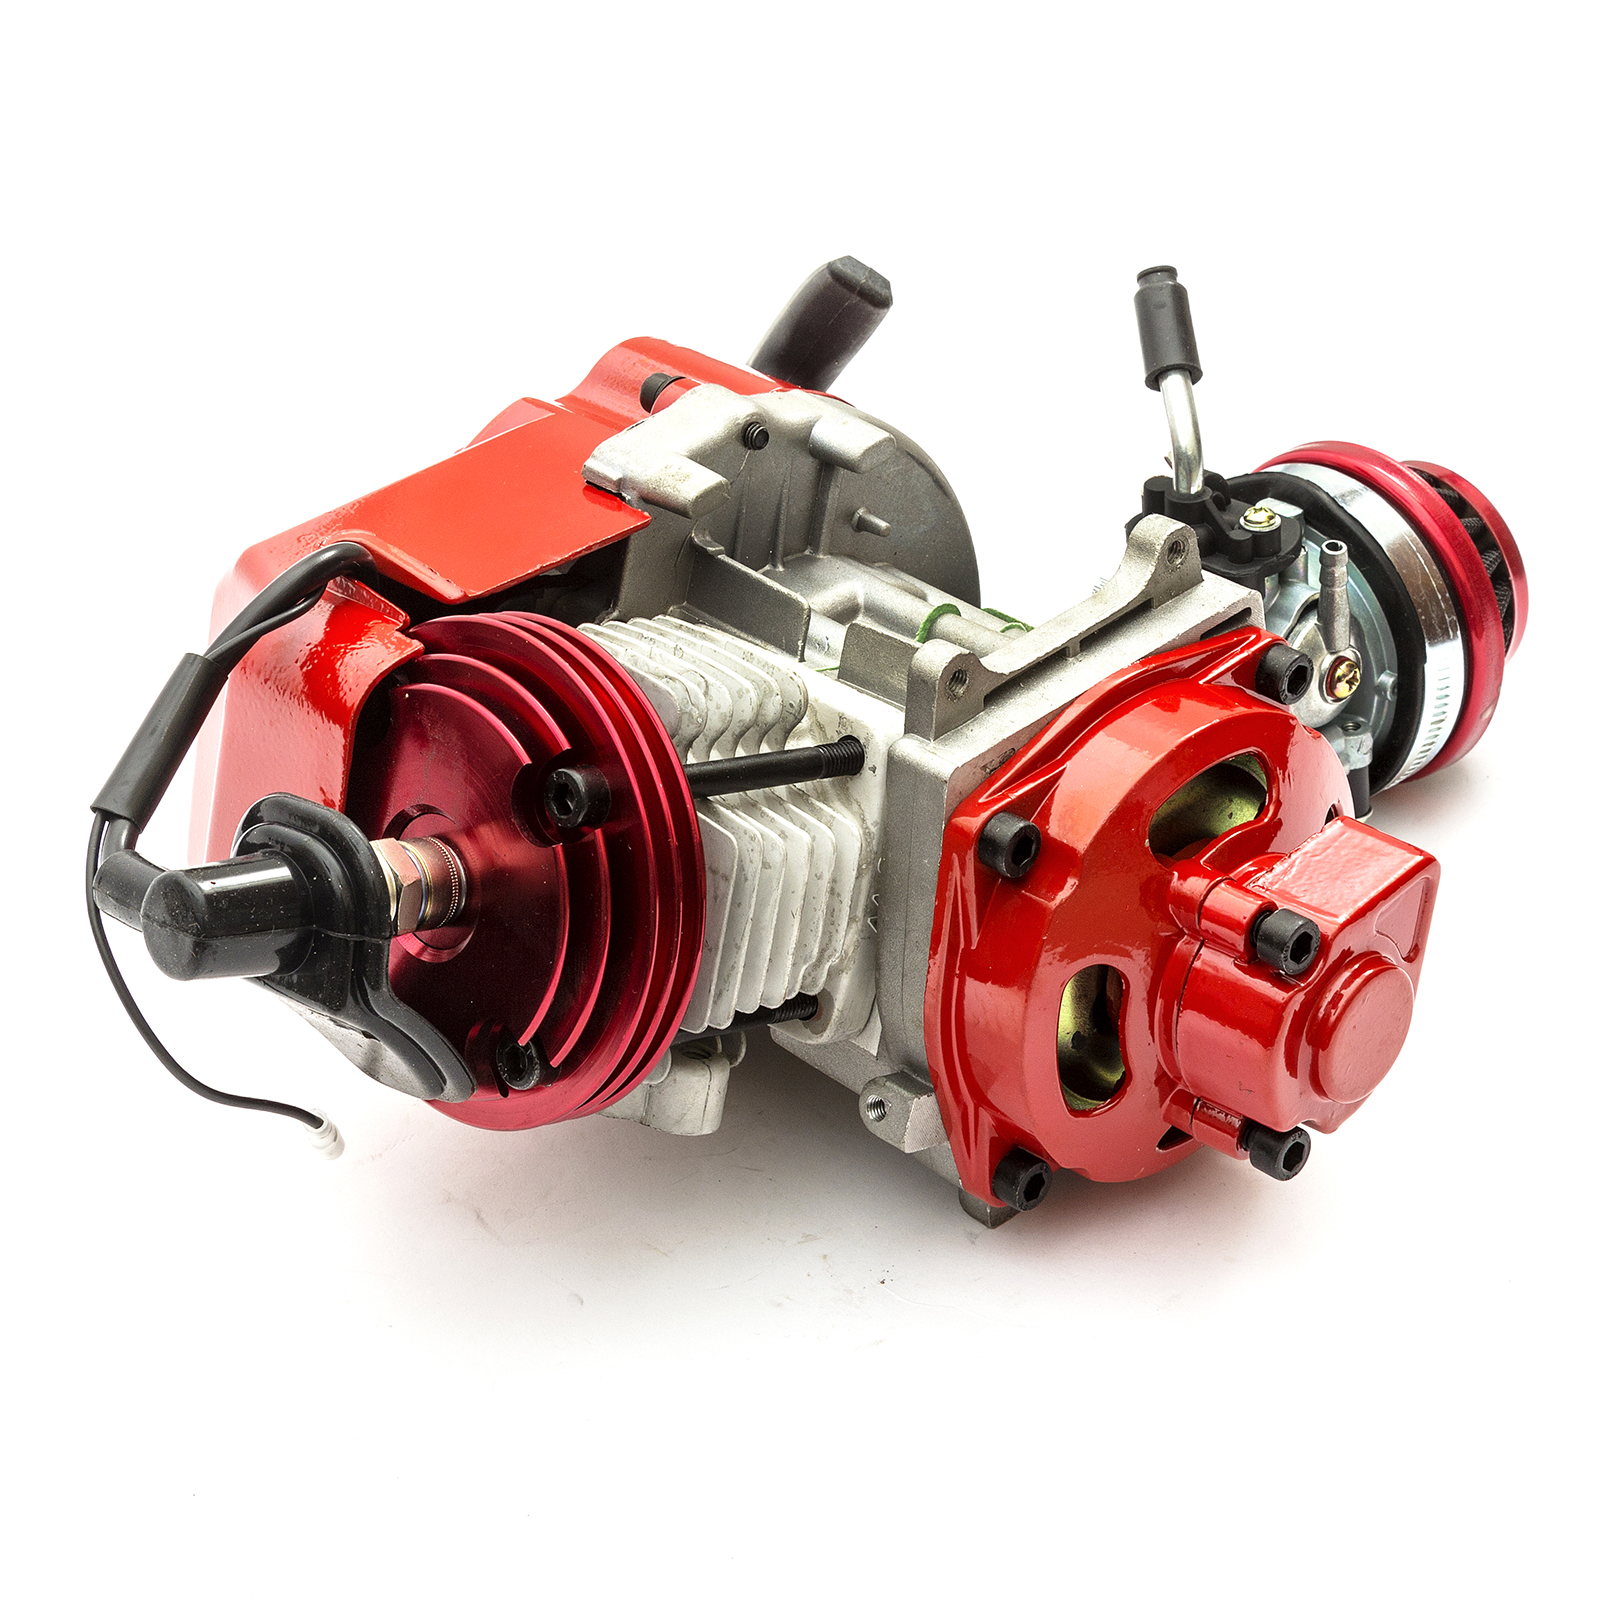 49cc 2 Stroke Mini Racing Engine Motor Air-Cooled for Dirt Bike Pocket Scooter